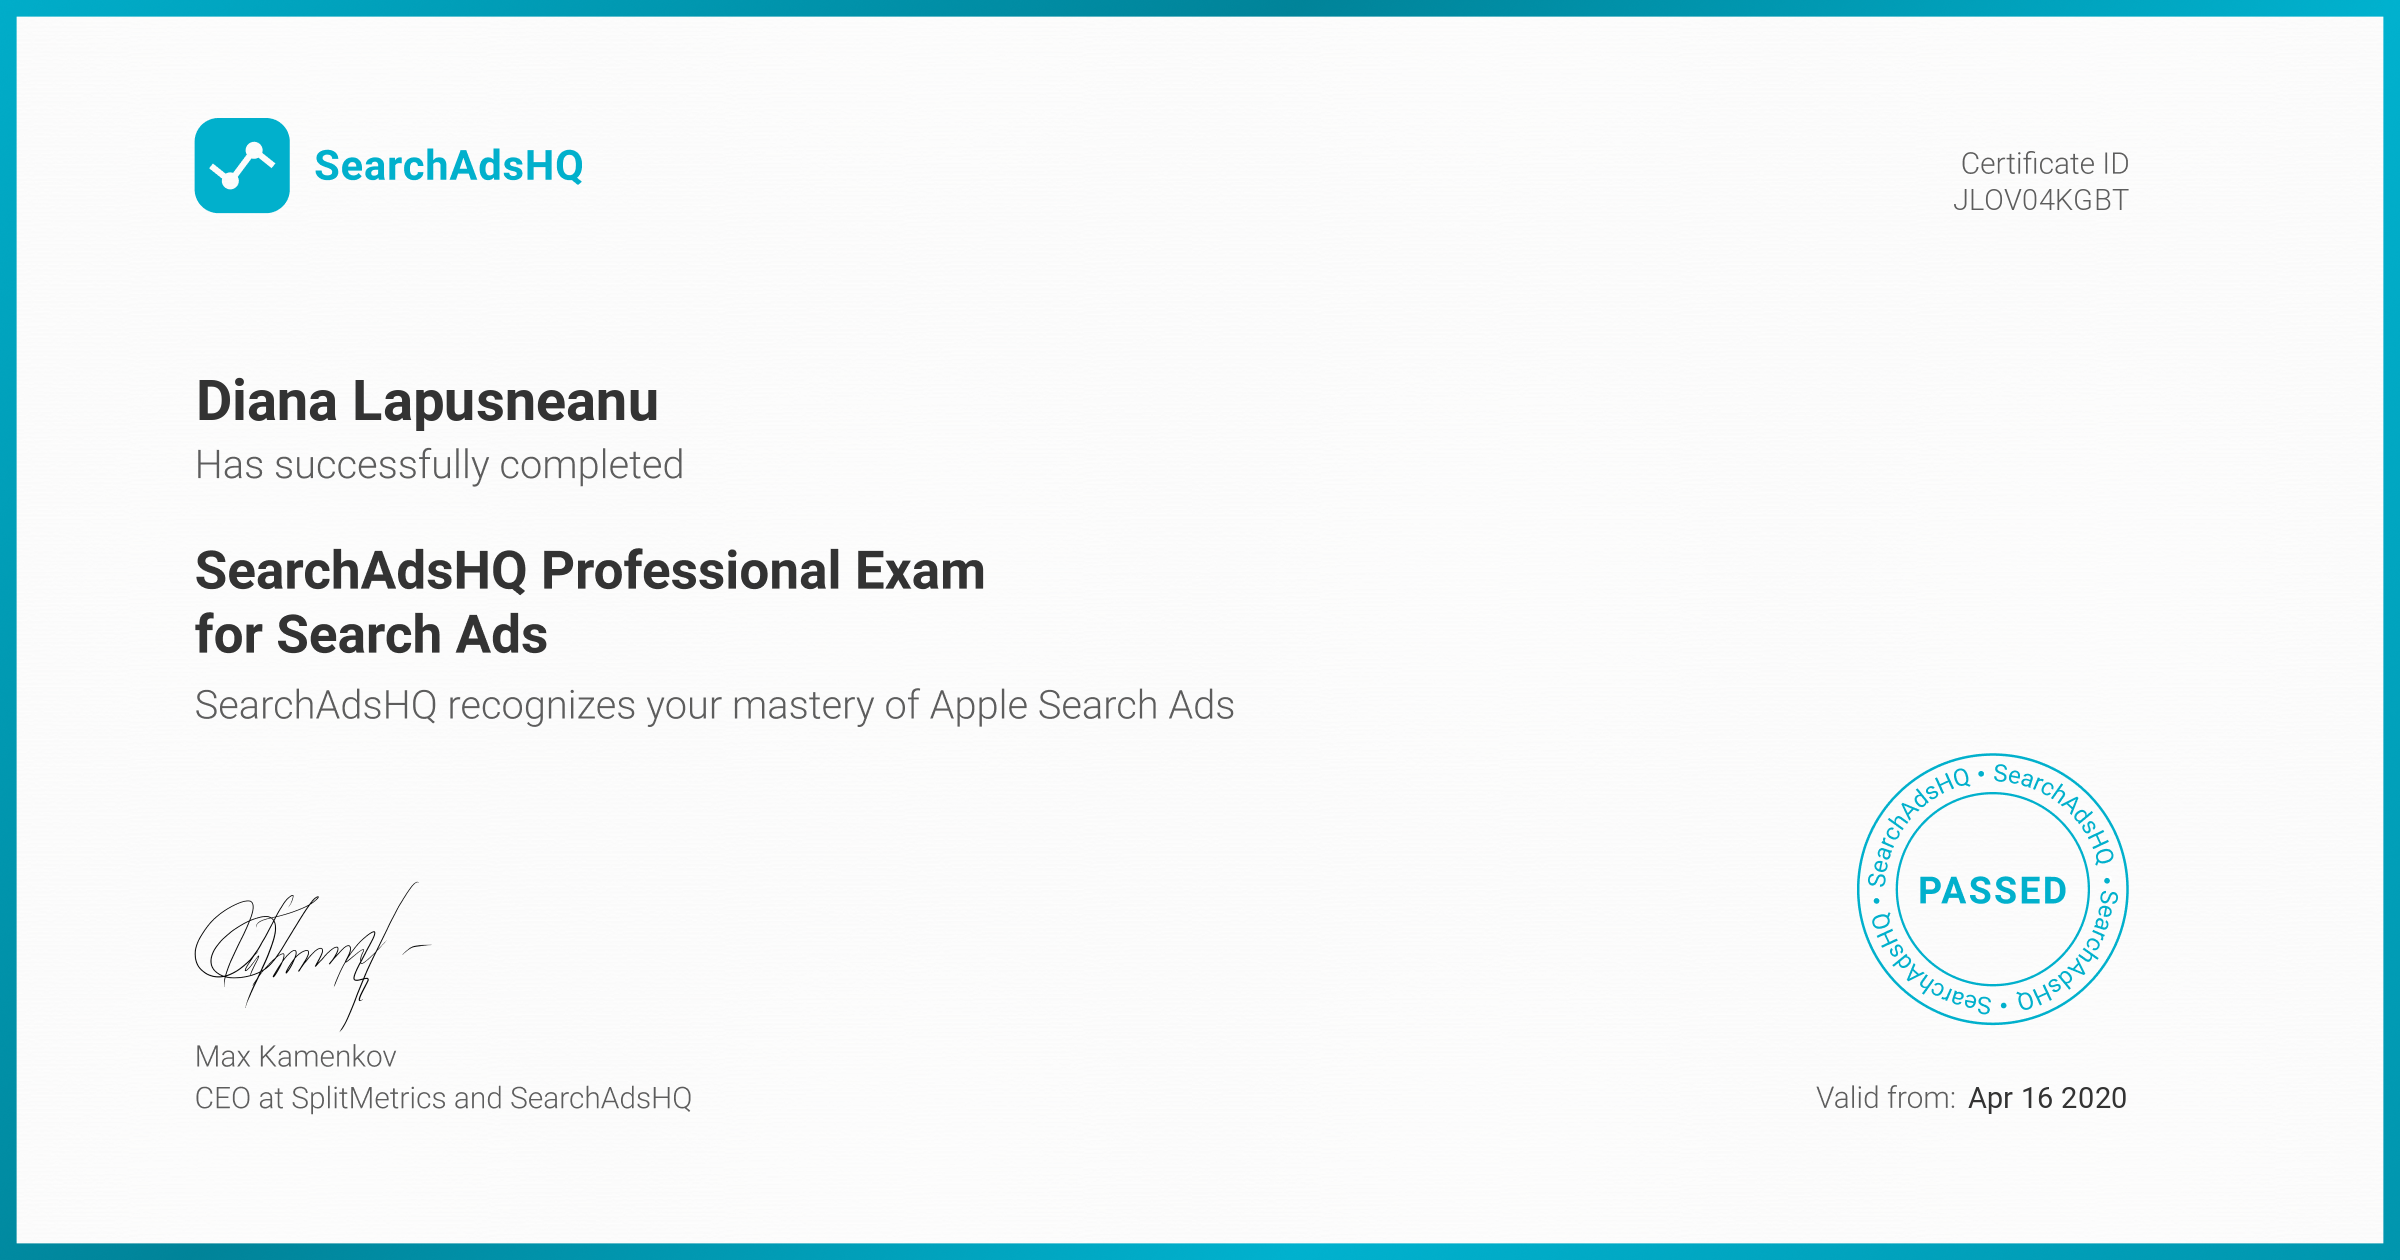 Certificate for Diana Lapusneanu | SearchAdsHQ Professional Exam for Search Ads